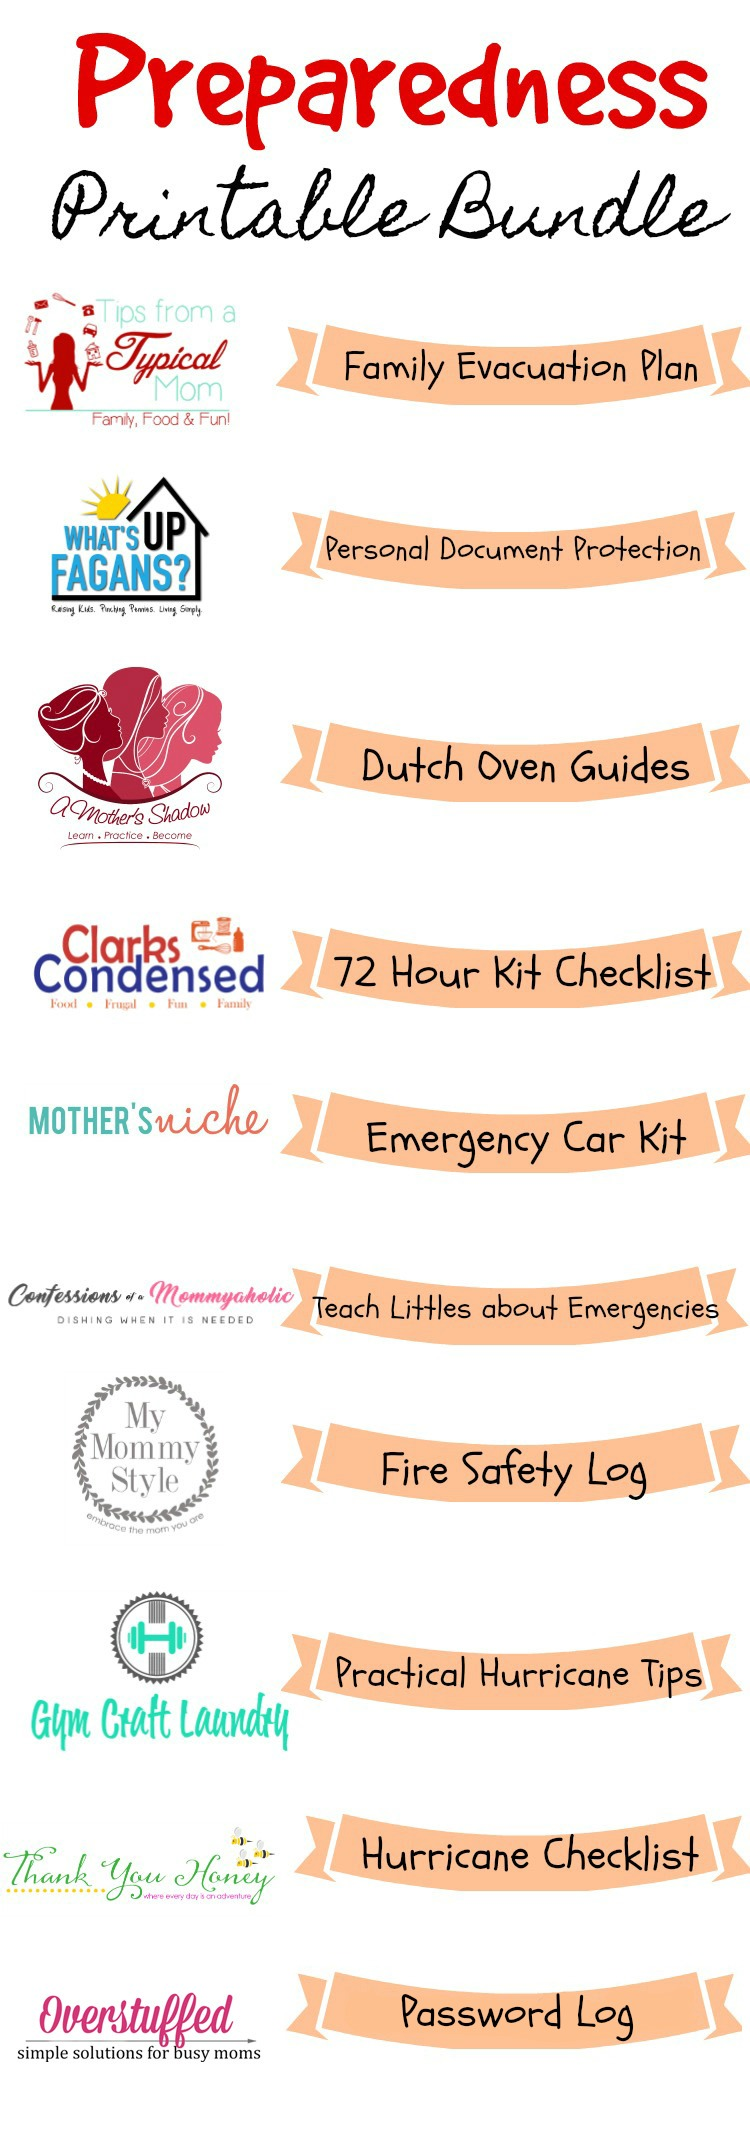 preparedness-printable-bundle1-updated